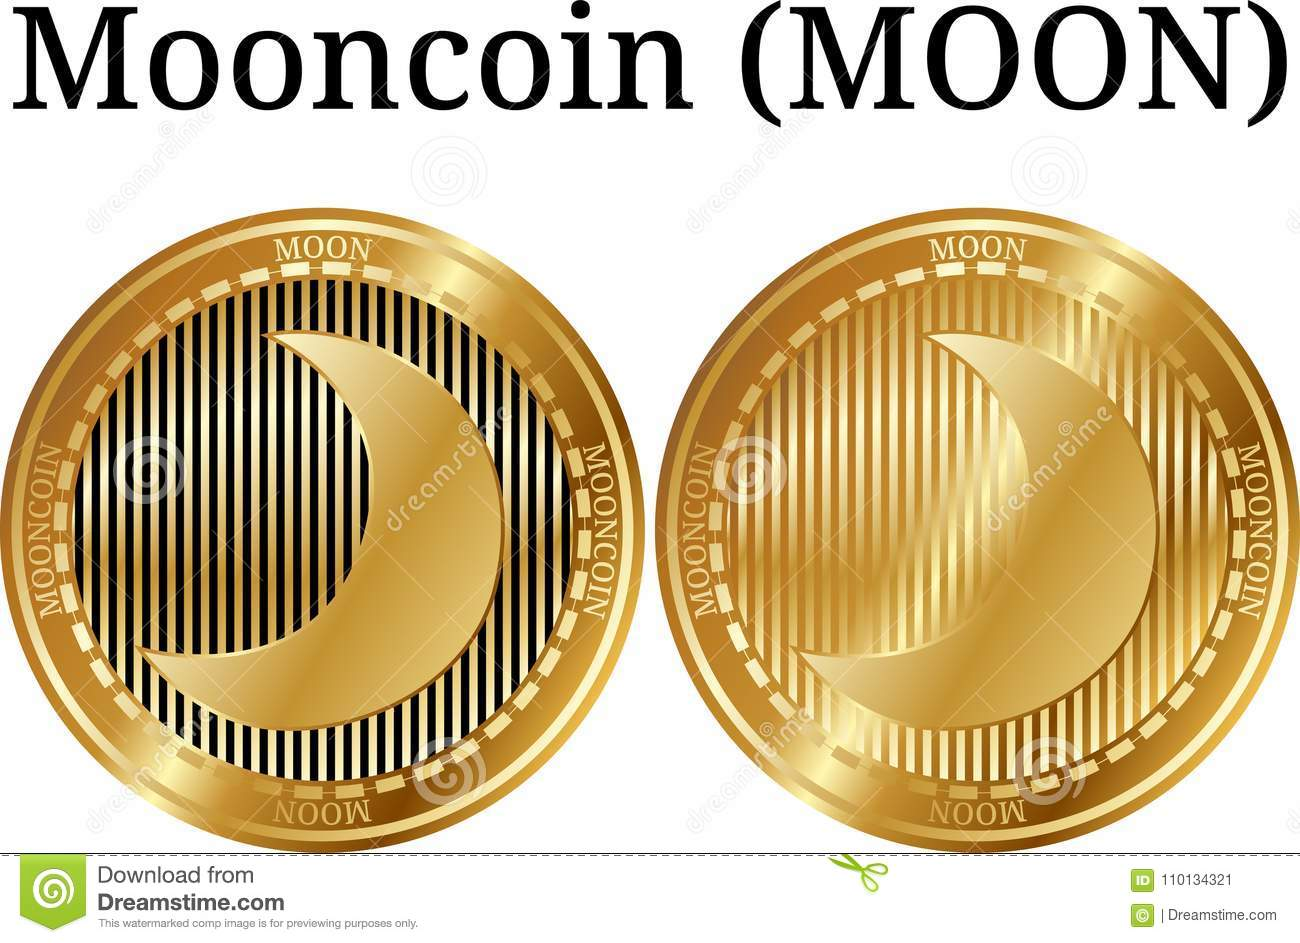 Mooncoin crypto currency world sport betting application